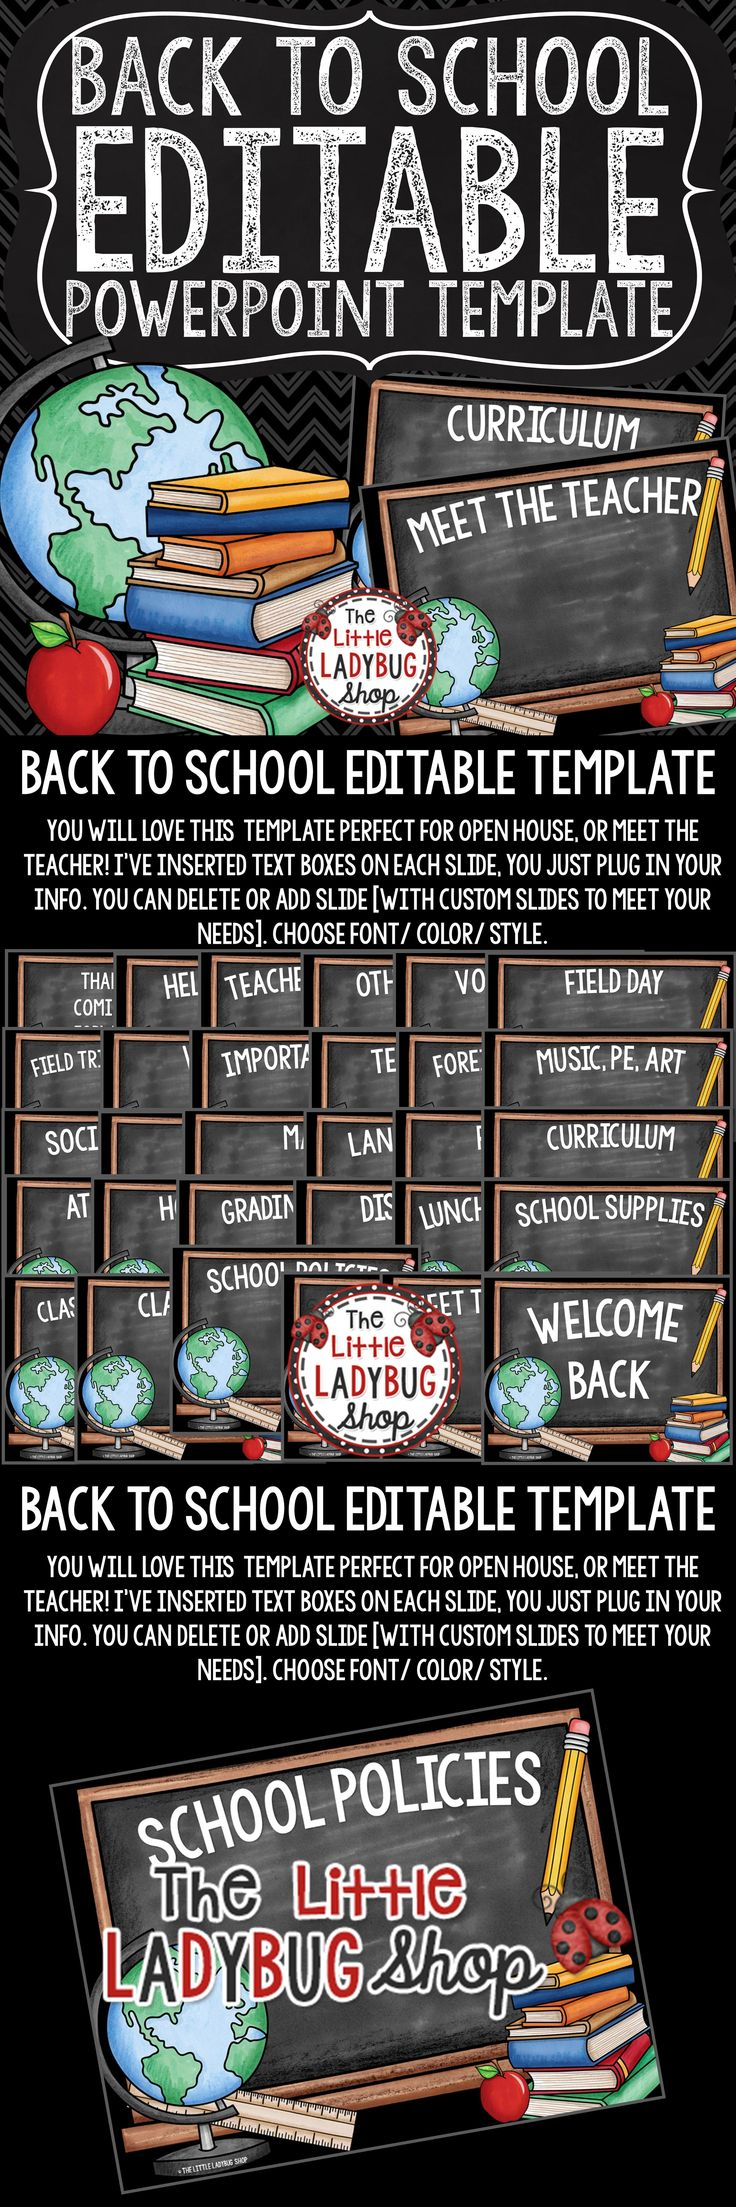 You will LOVE this Back To School PowerPoint for Open House and Meet The Teacher. It is perfect to present all your important information to your class and parents. This lovely theme is perfect for Open House, Meet the Teacher, and other school functions! This template is created in PowerPoint and it is 100% editable for you to plug in your classroom information!